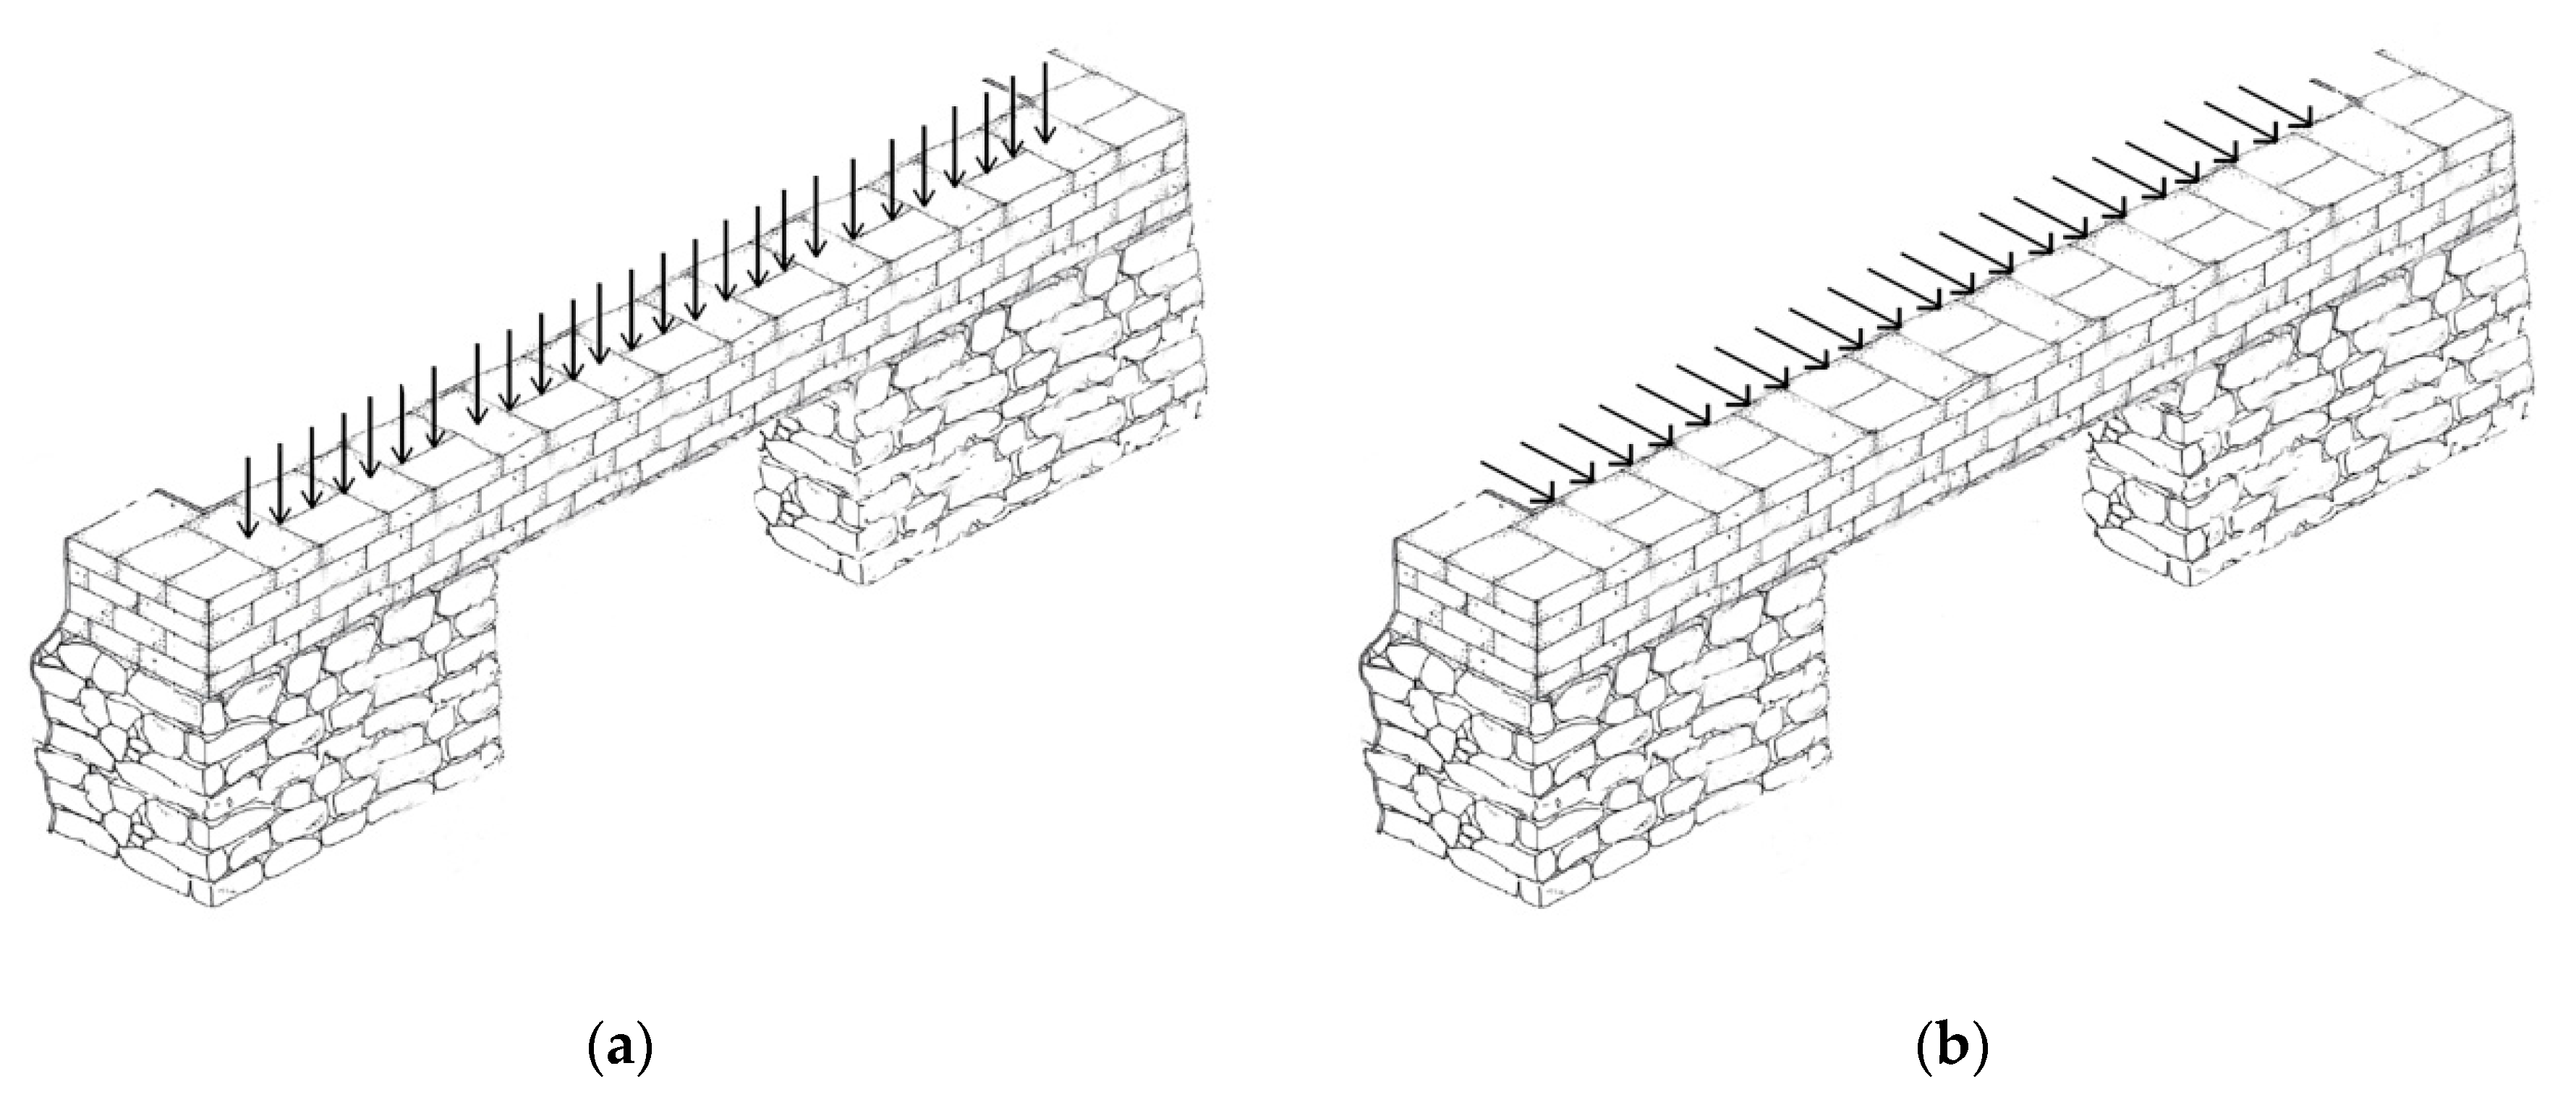 Case Passive In Muratura buildings | free full-text | simplified design of masonry